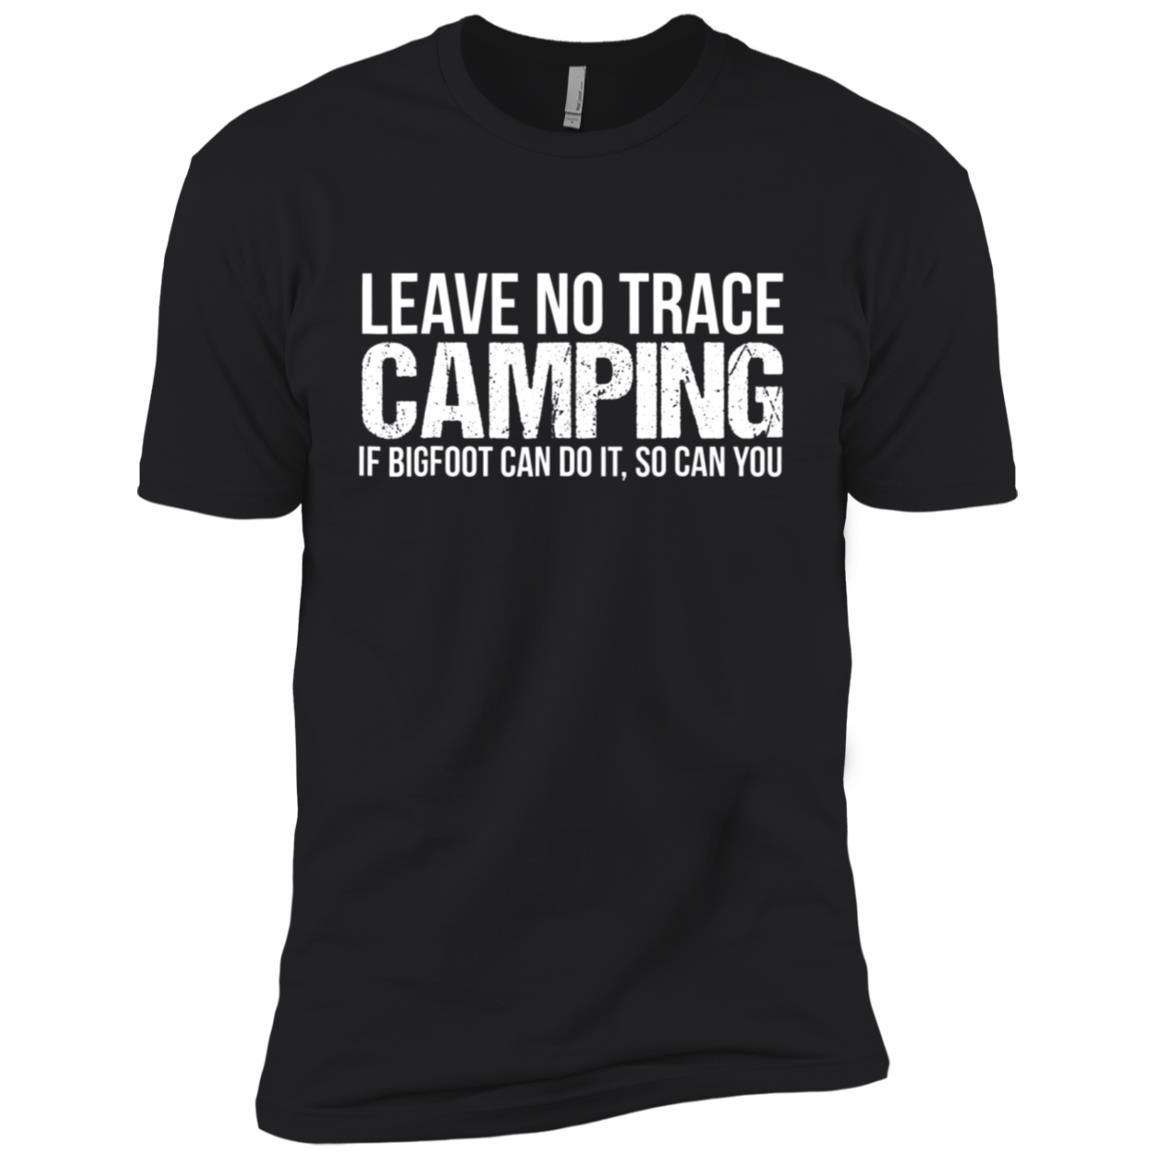 Leave No Trace Camping – Bigfoot Can Do It Men Short Sleeve T-Shirt